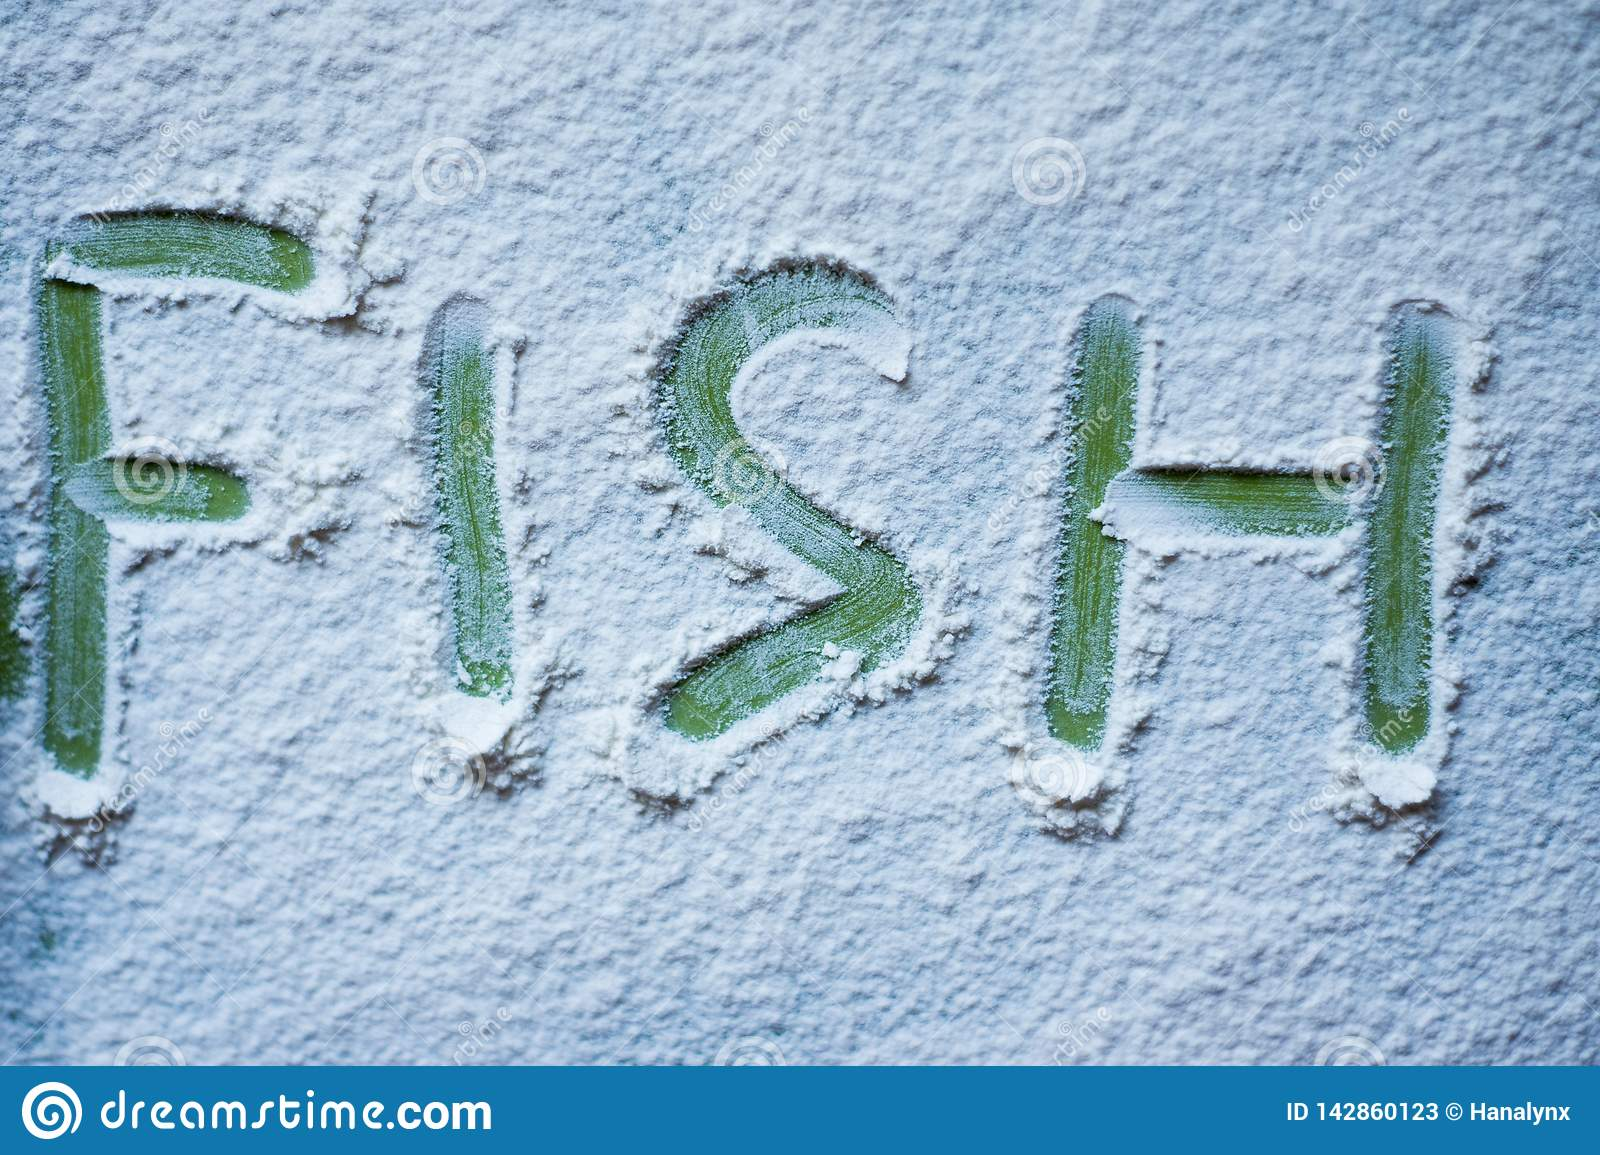 The green word Fish is written in flour